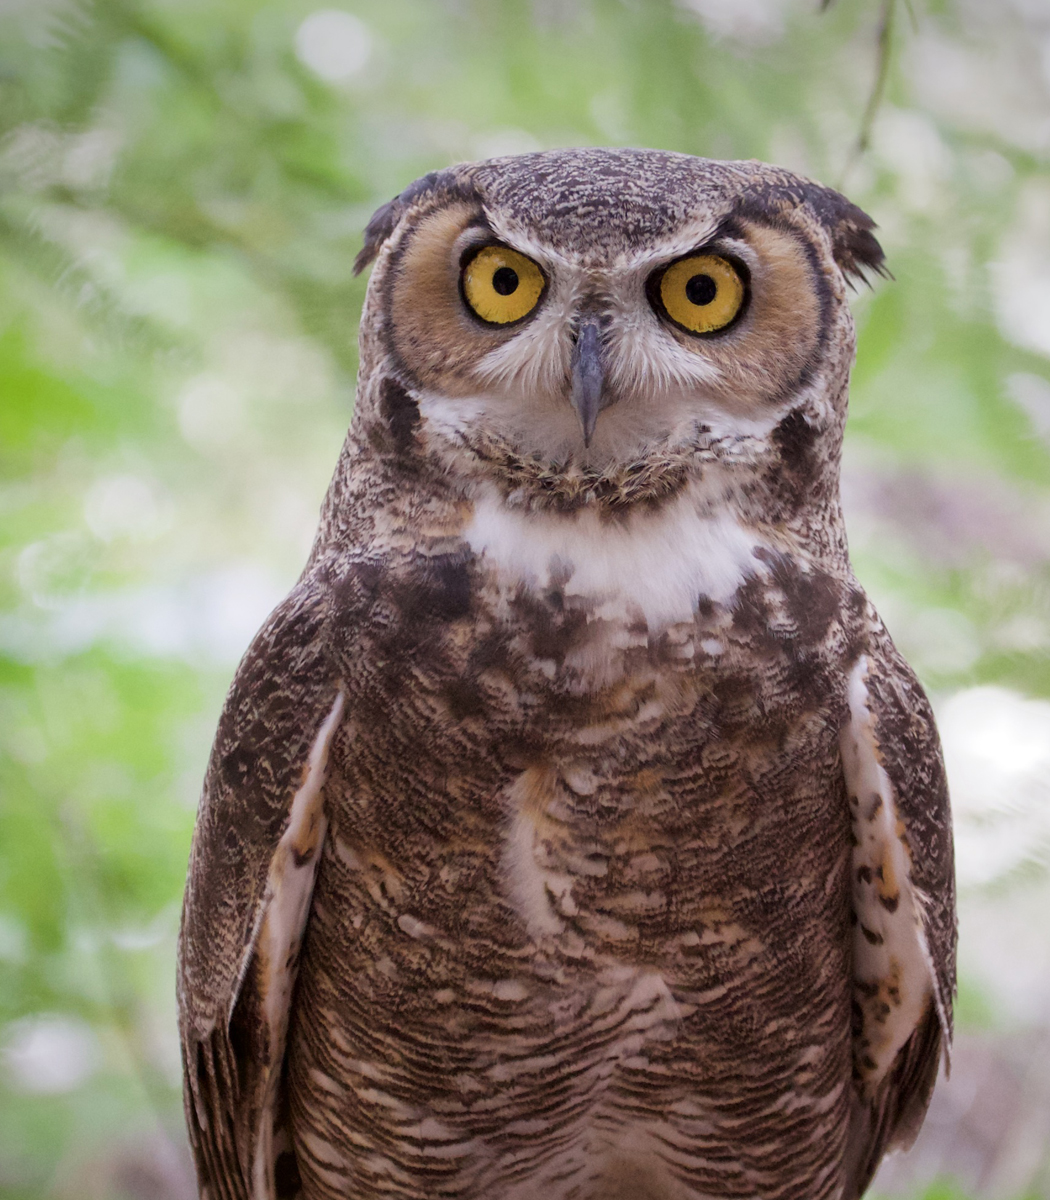 Moccasin Great Horned Owl